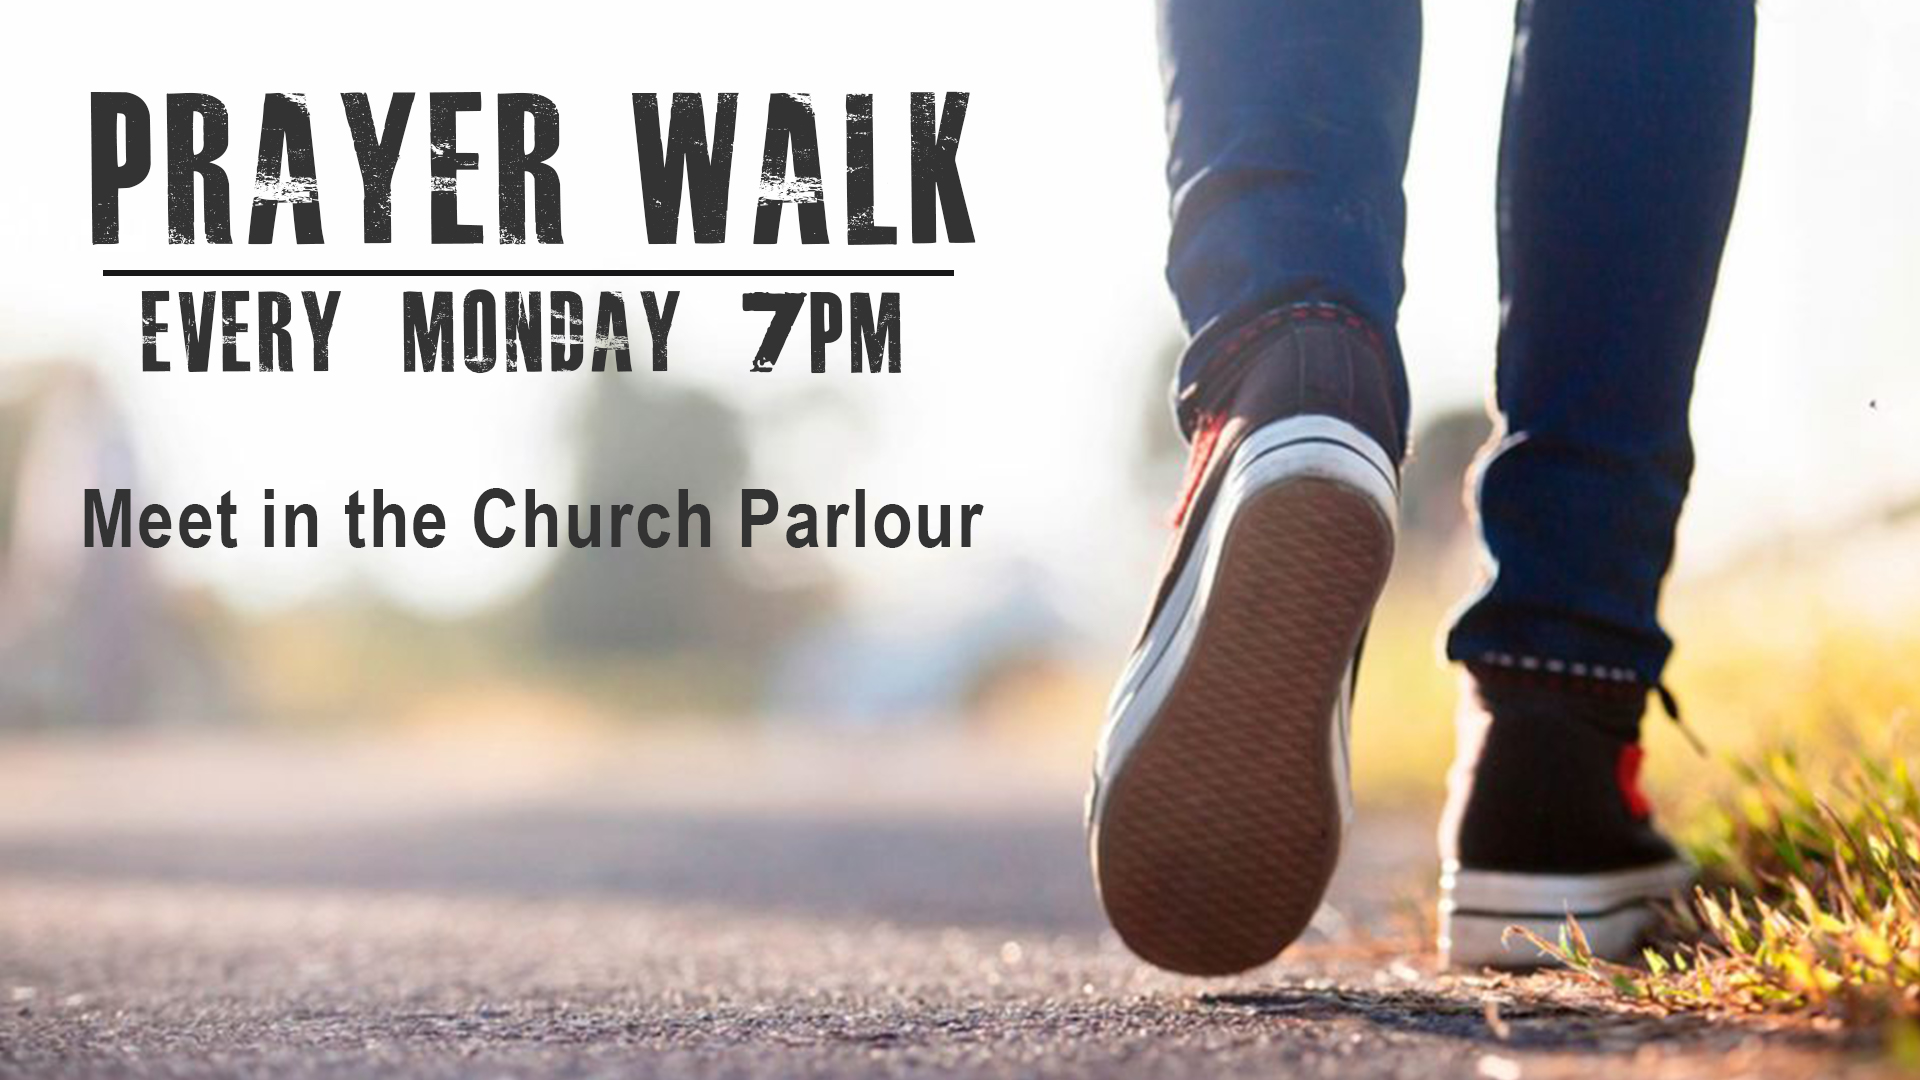 Prayer Walk Slide.jpg